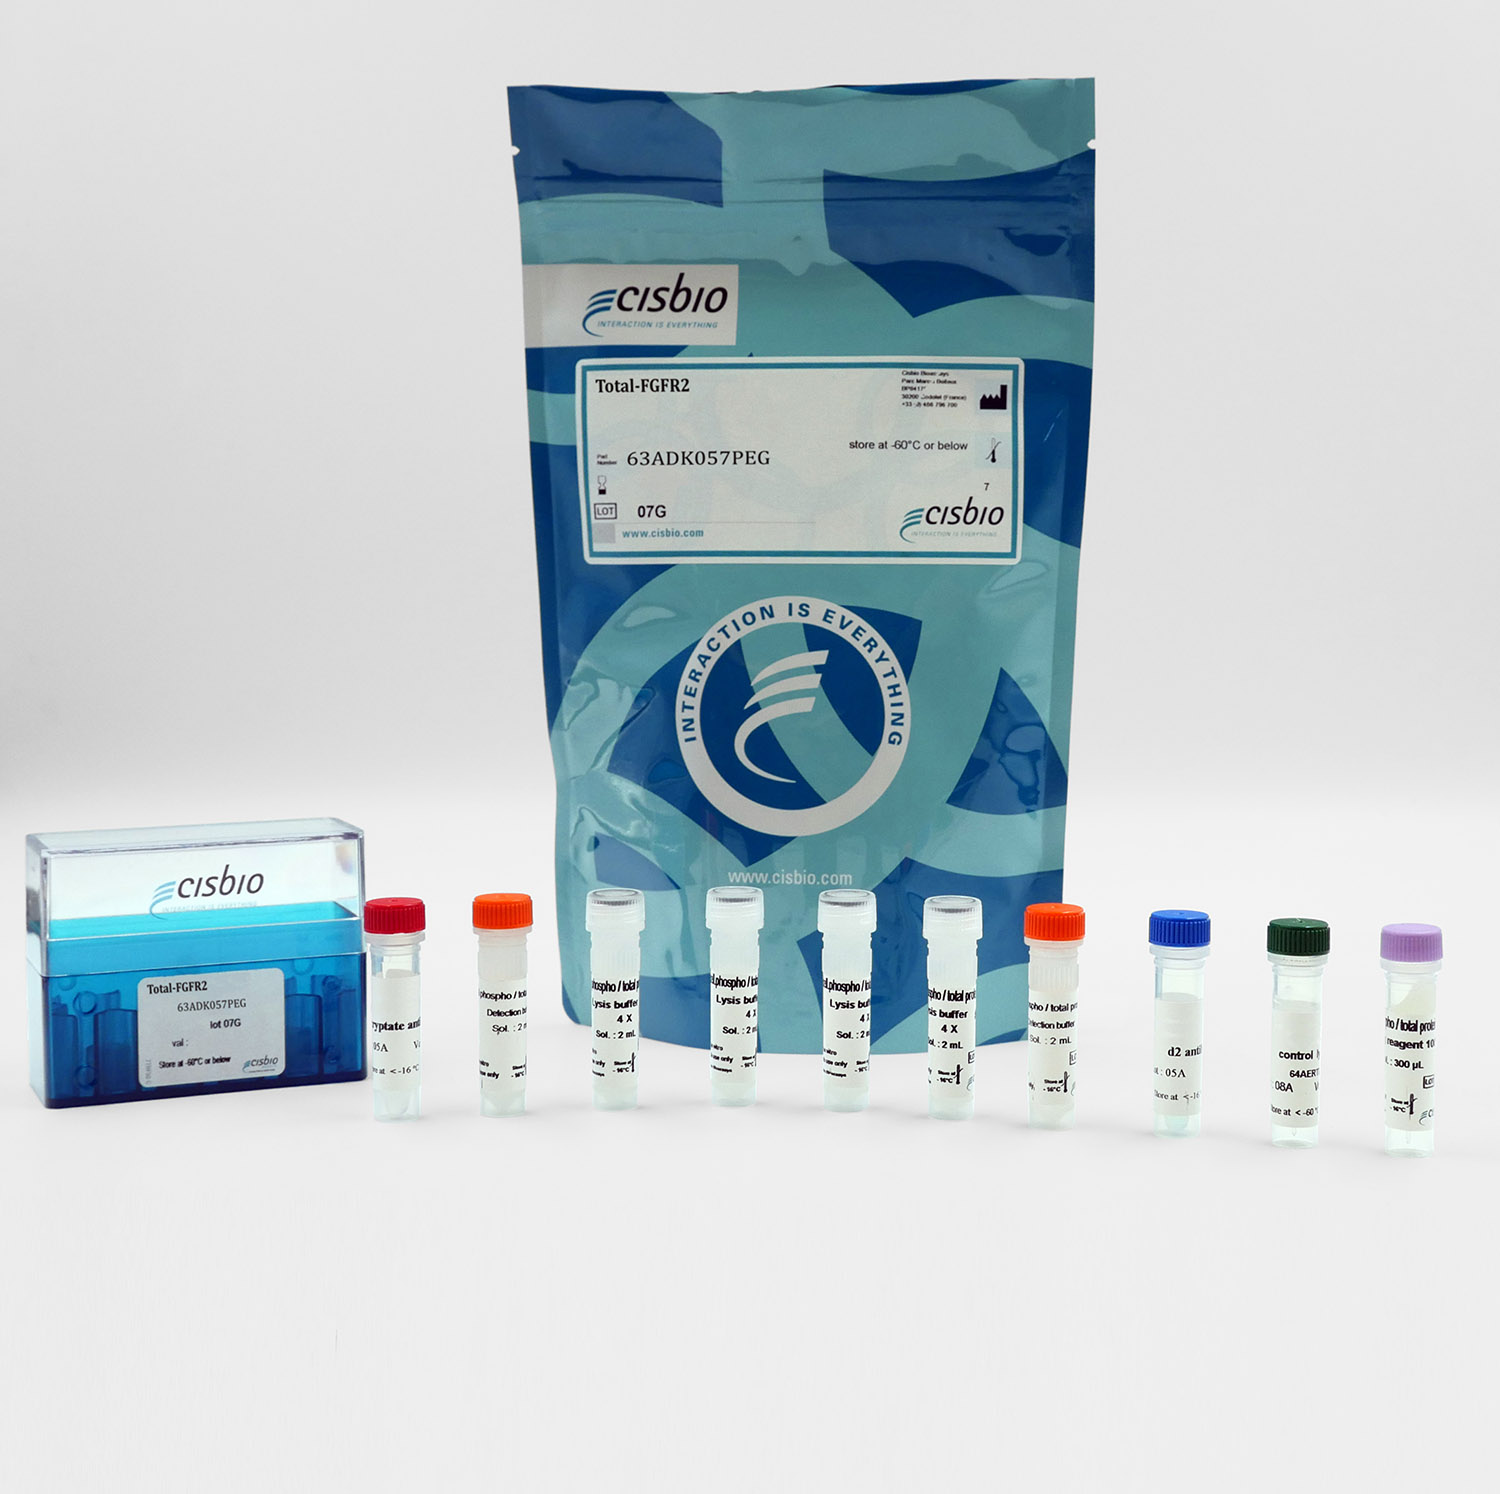 Total FGFR2 cellular kit